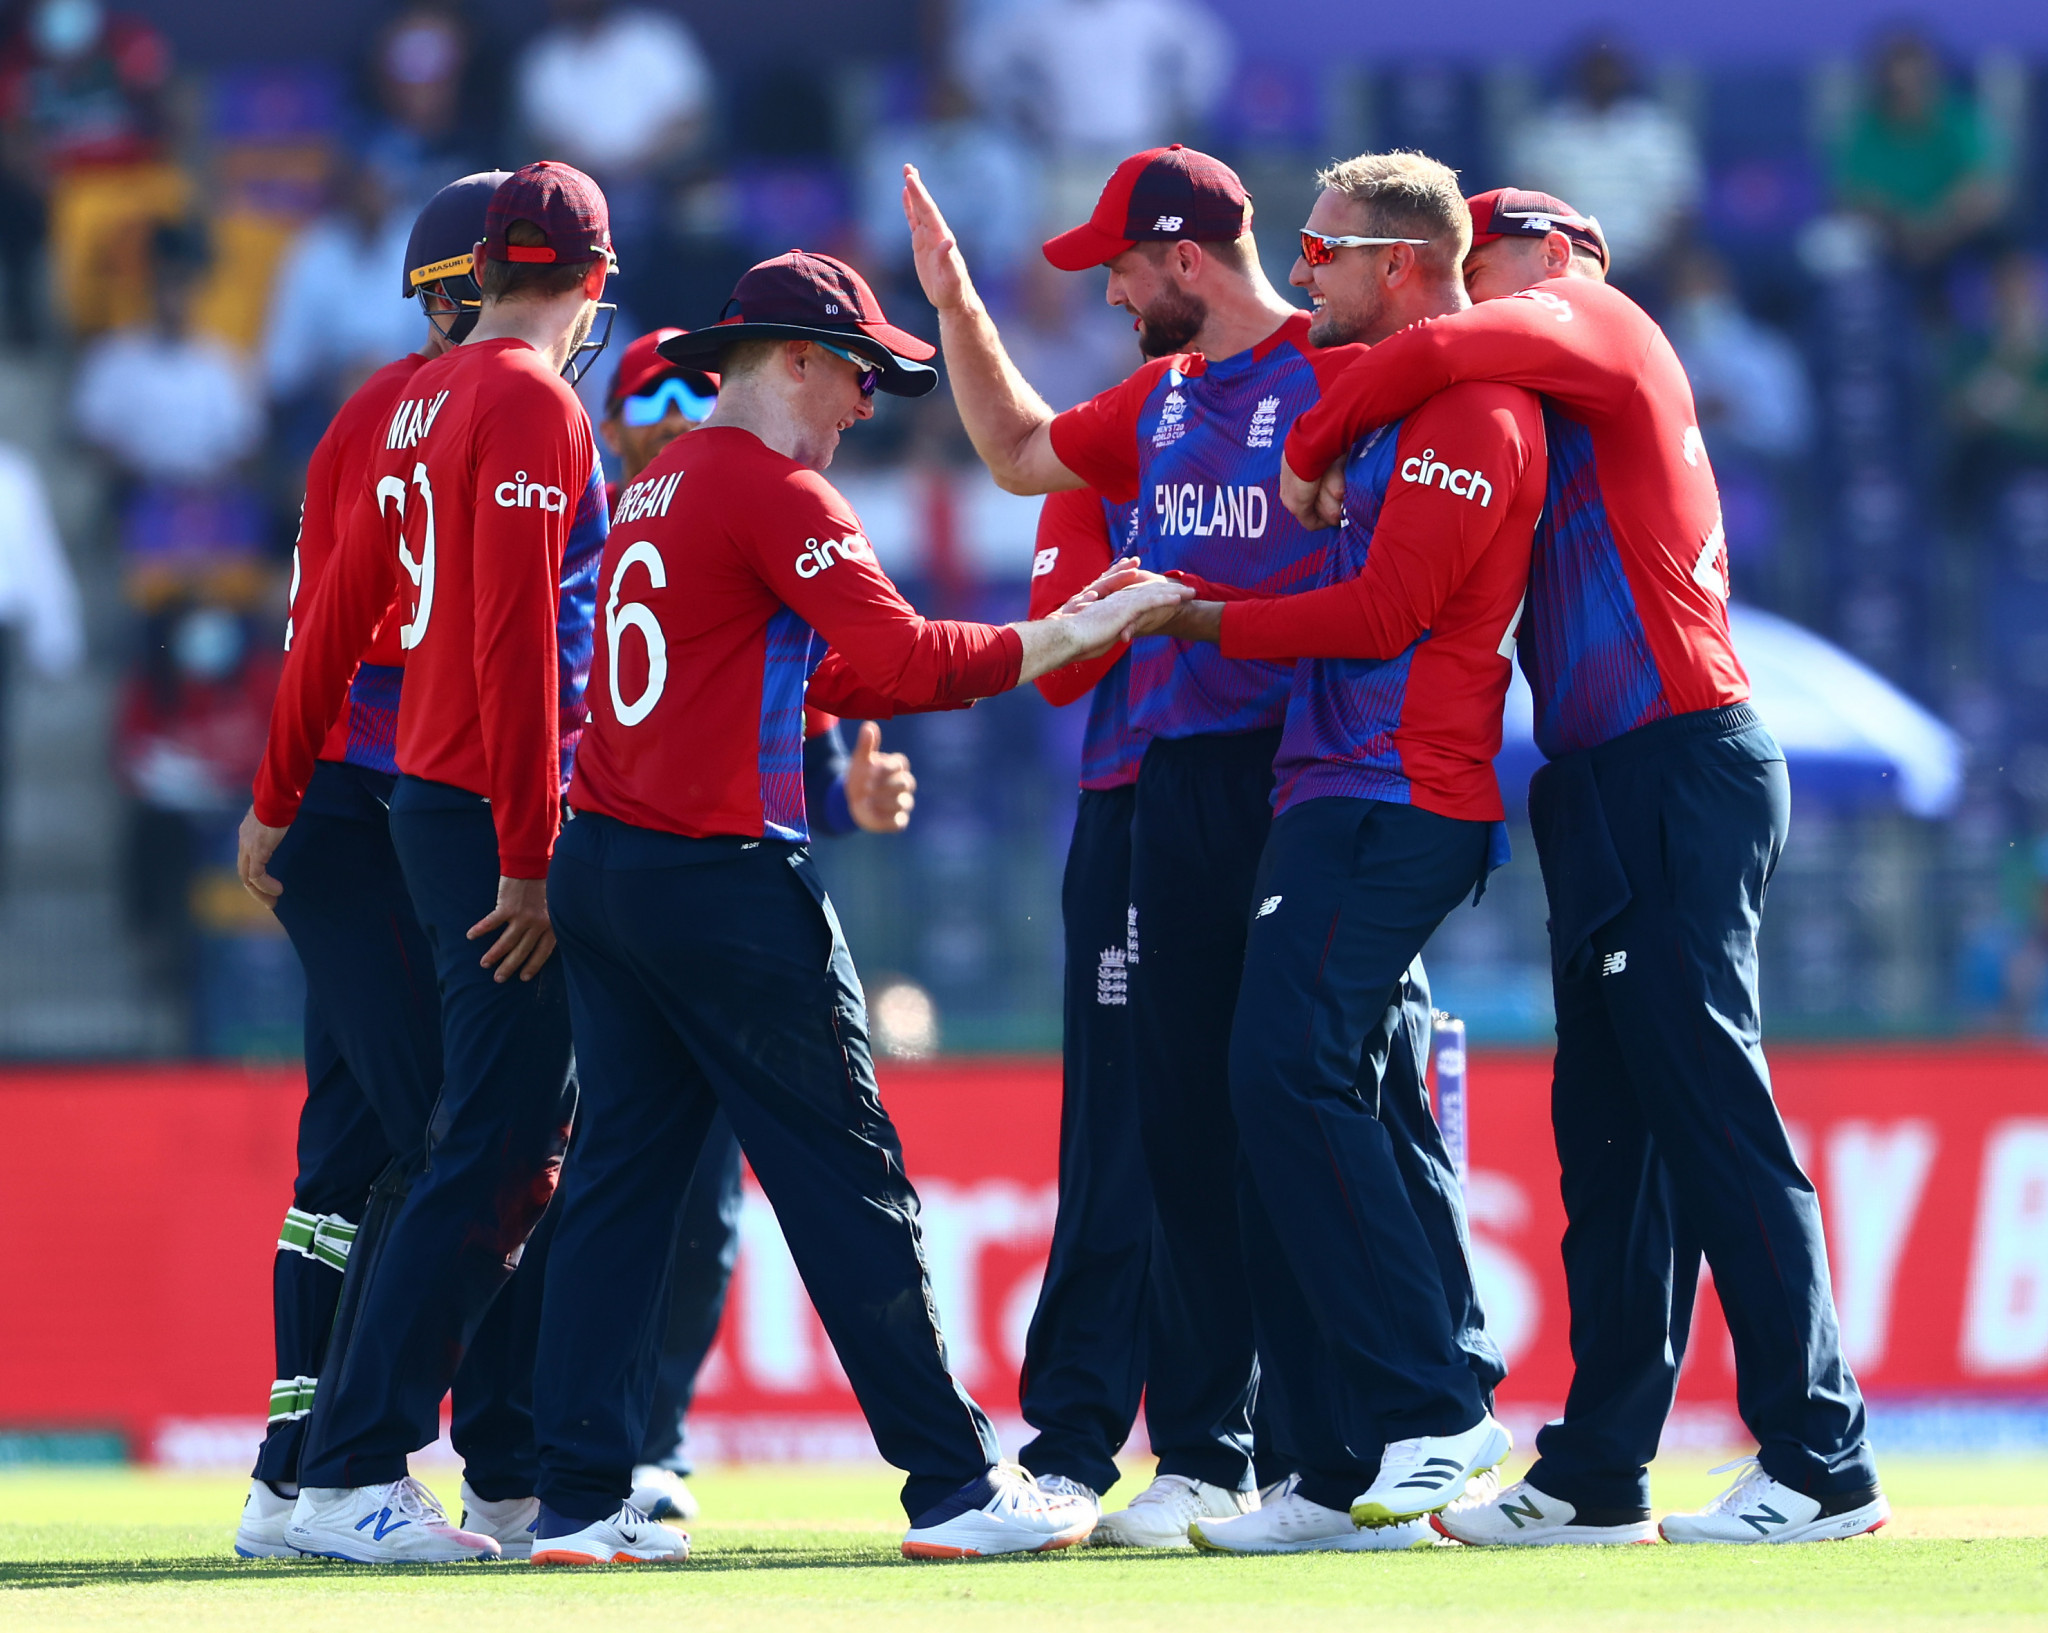 England bowlers dismantle Bangladesh as one-day world champions move top of group 1 at T20 World Cup